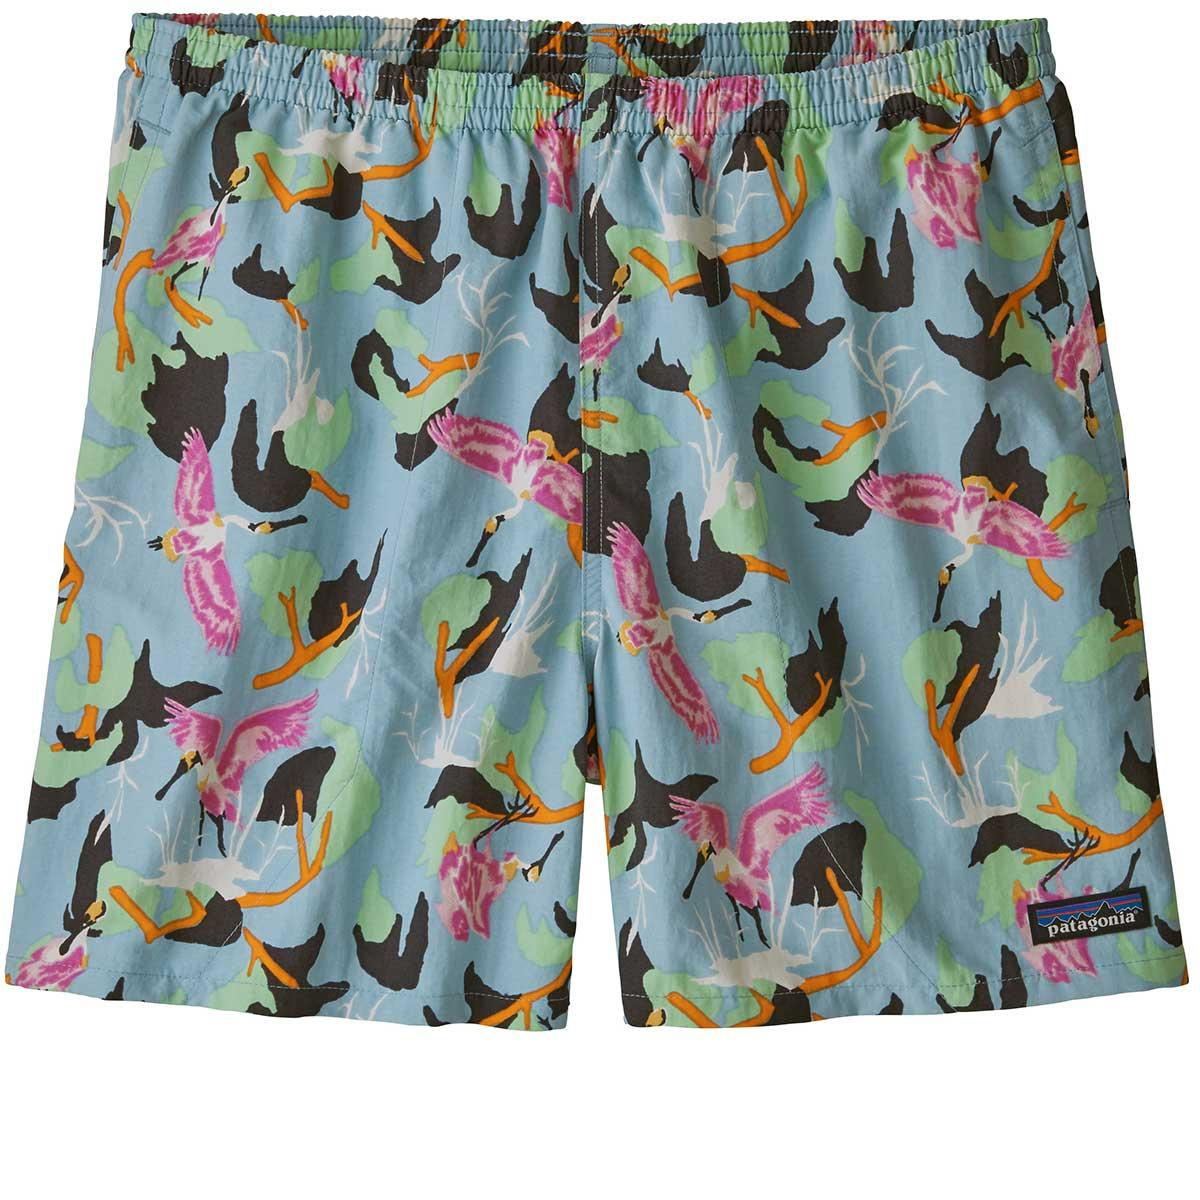 Patagonia men's Baggies 5in Shorts in Spoonbills and Big Sky Blue front view